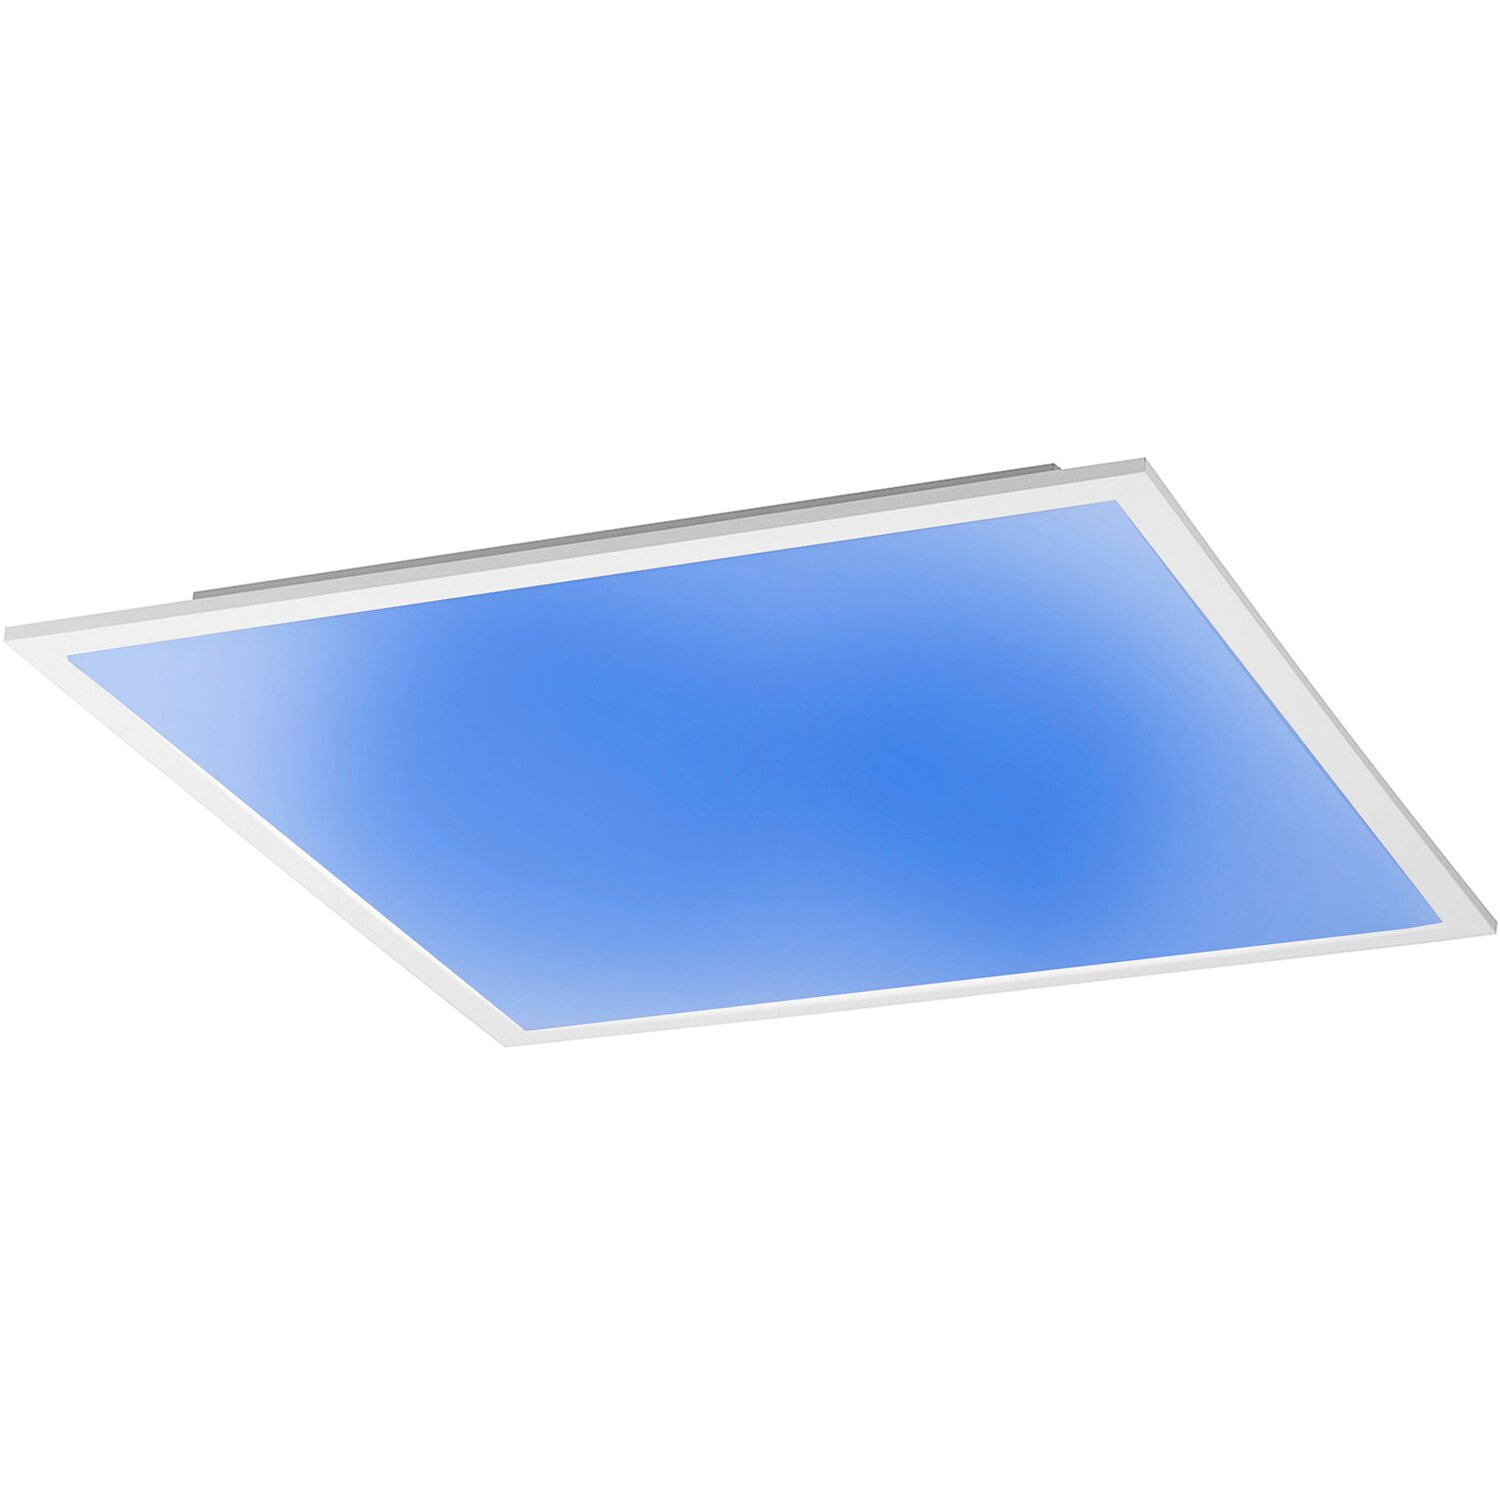 Led panel 30x30cm eek a rgb und warmwei ultraflaches - Led panel kuchenruckwand ...